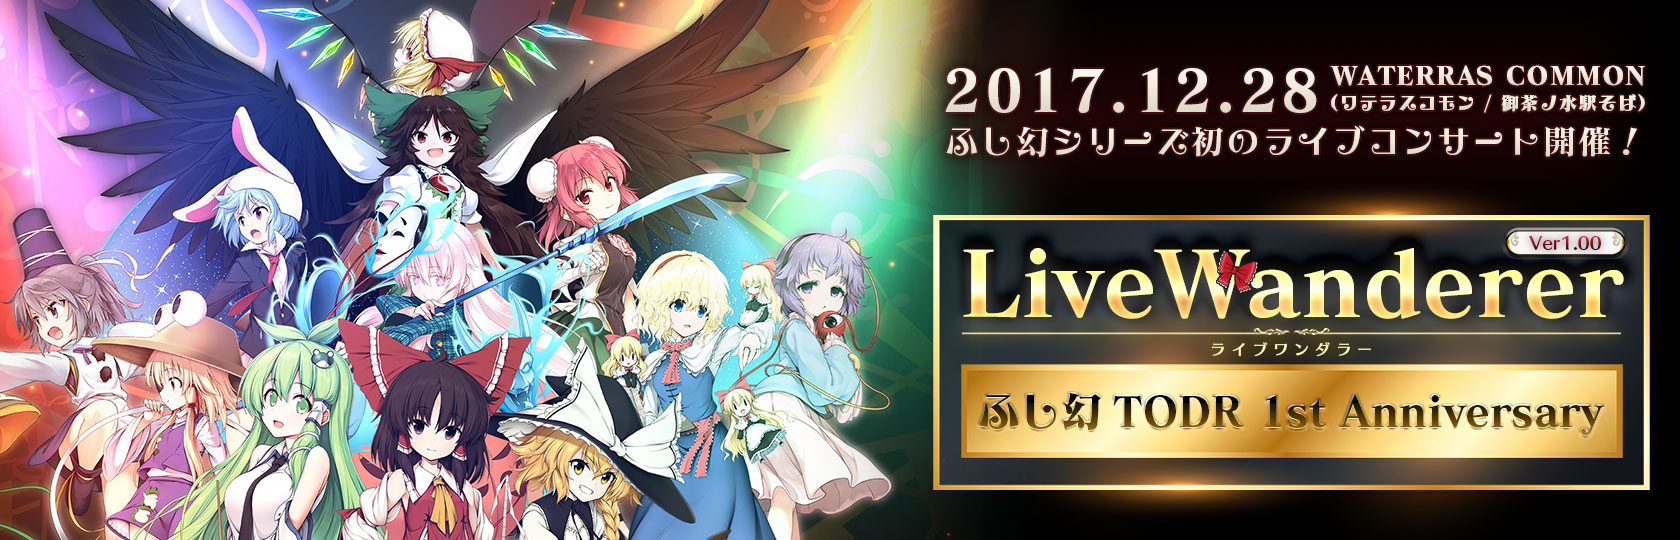 LiveWandere Ver1.00 -ふし幻TODR 1st anniversary-